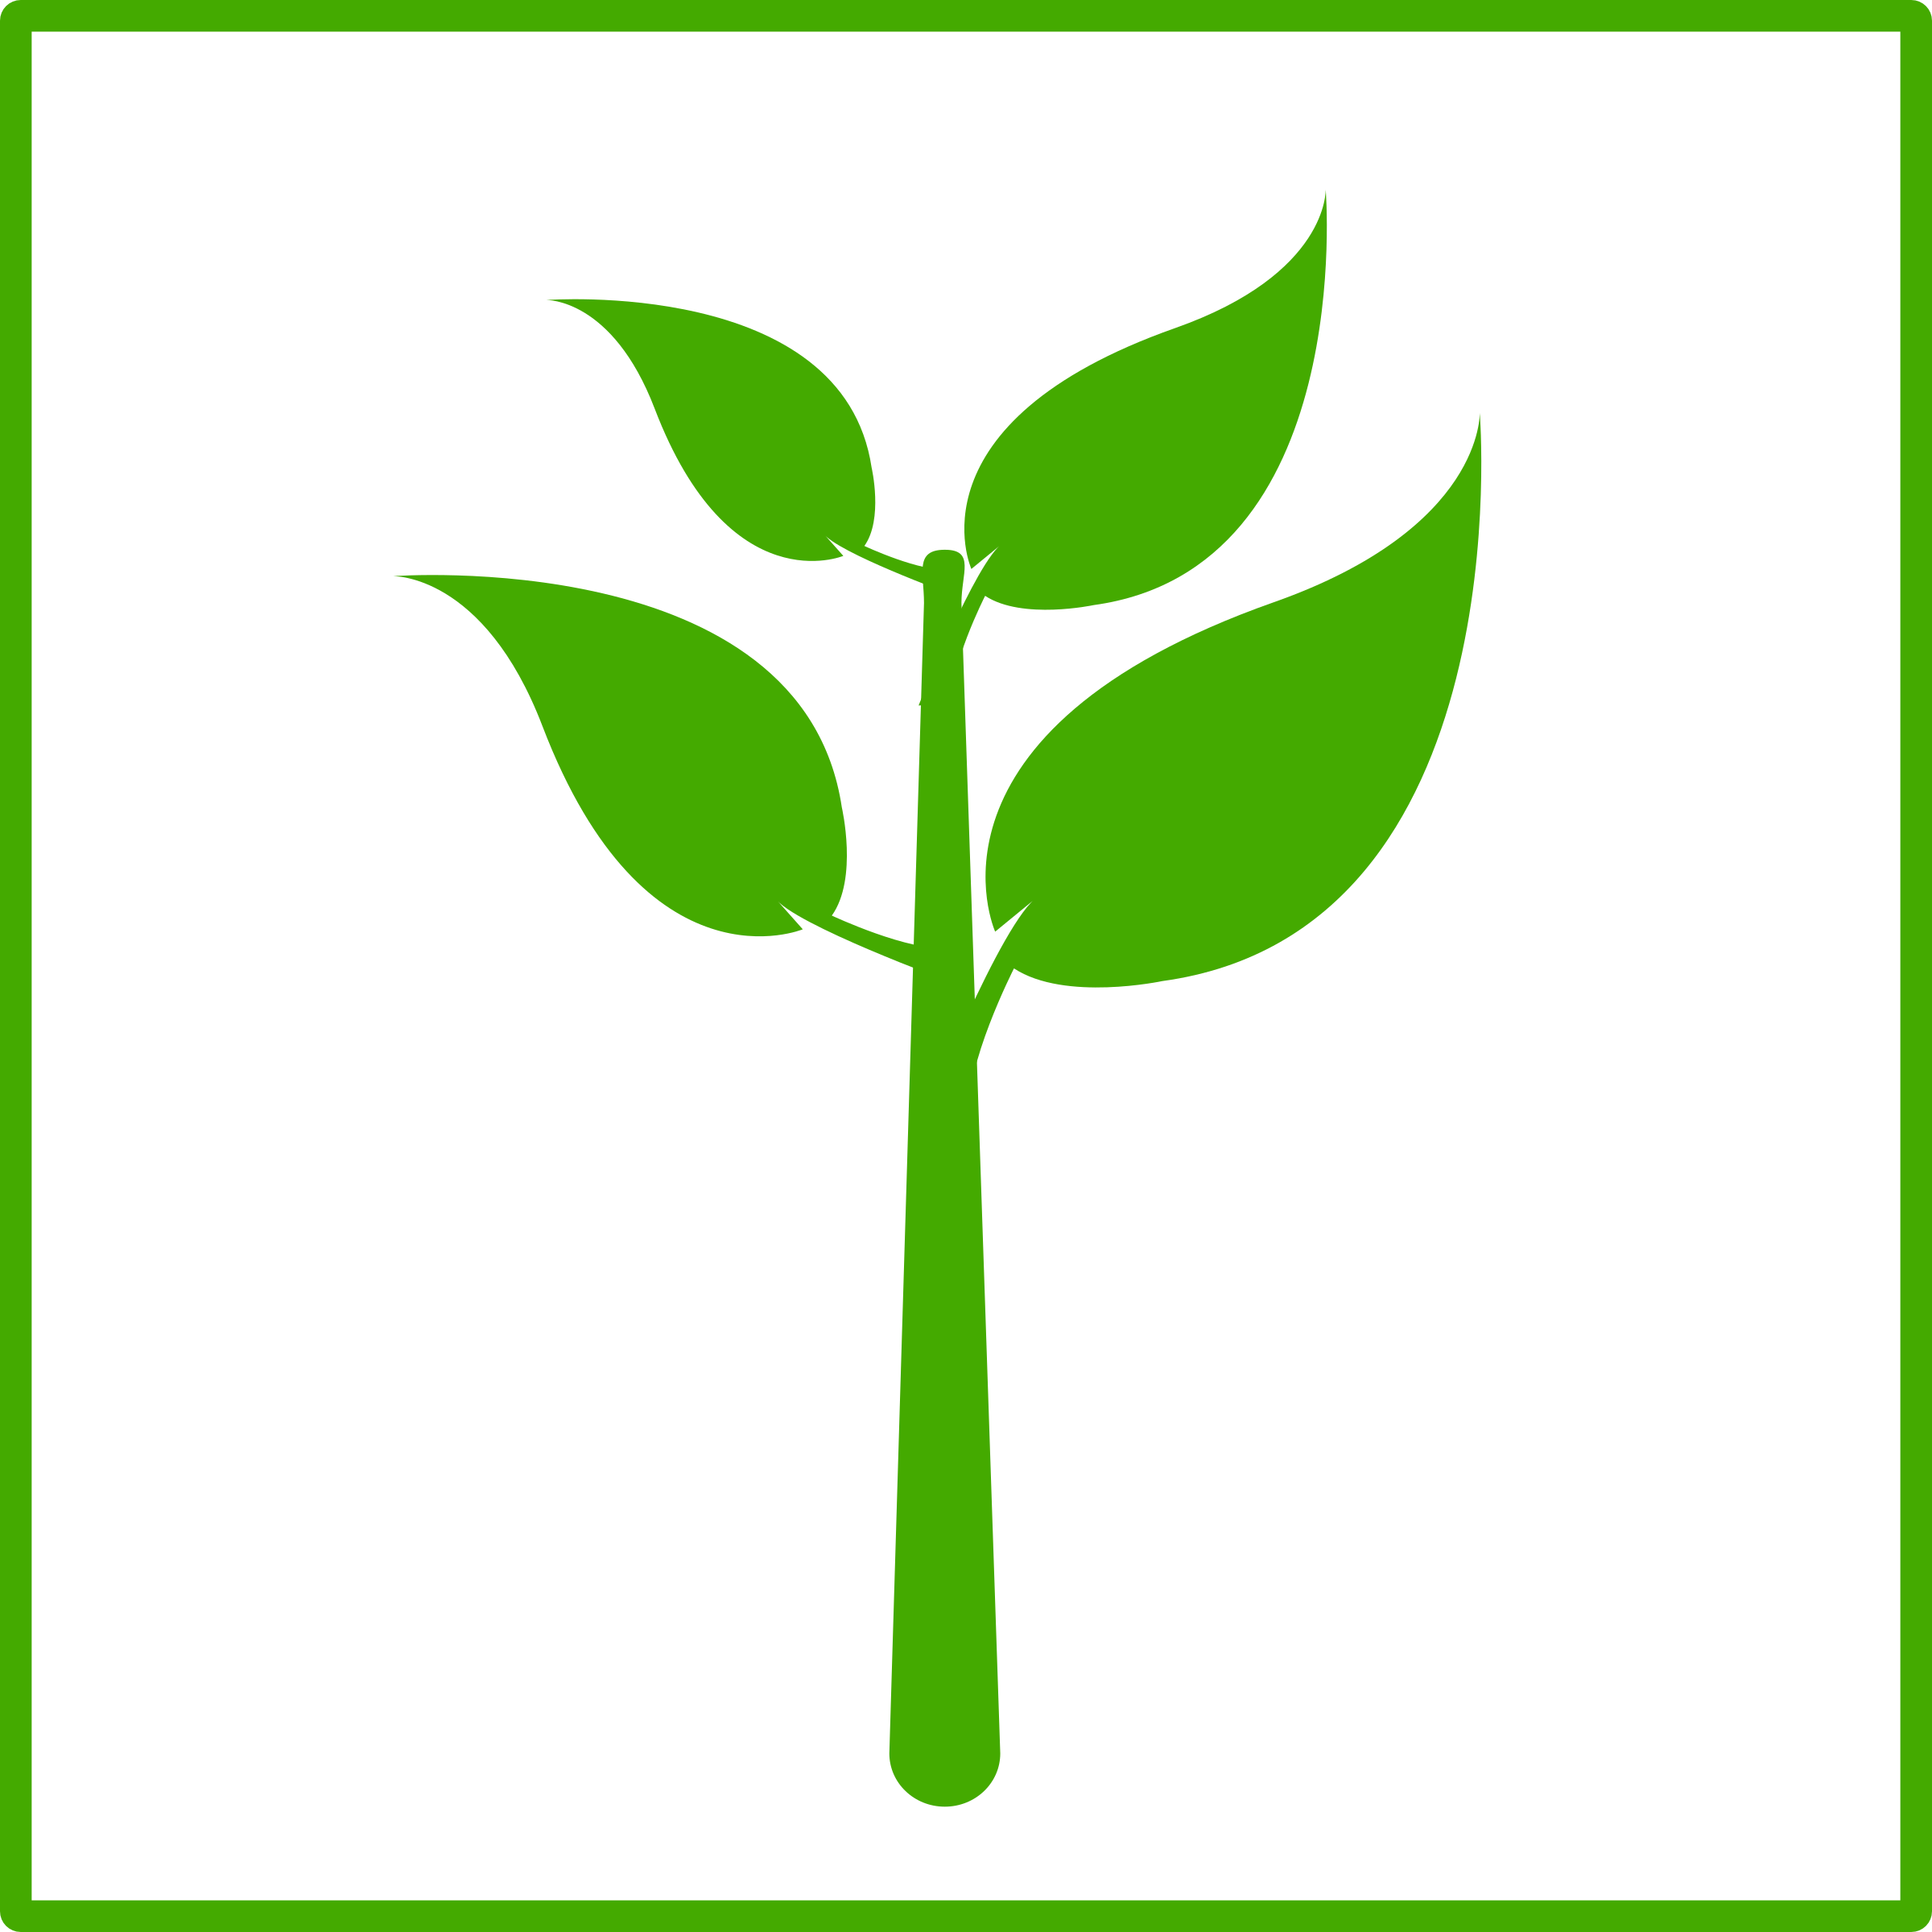 Leaves clipart stem and leaf plot. Eco green plant icon